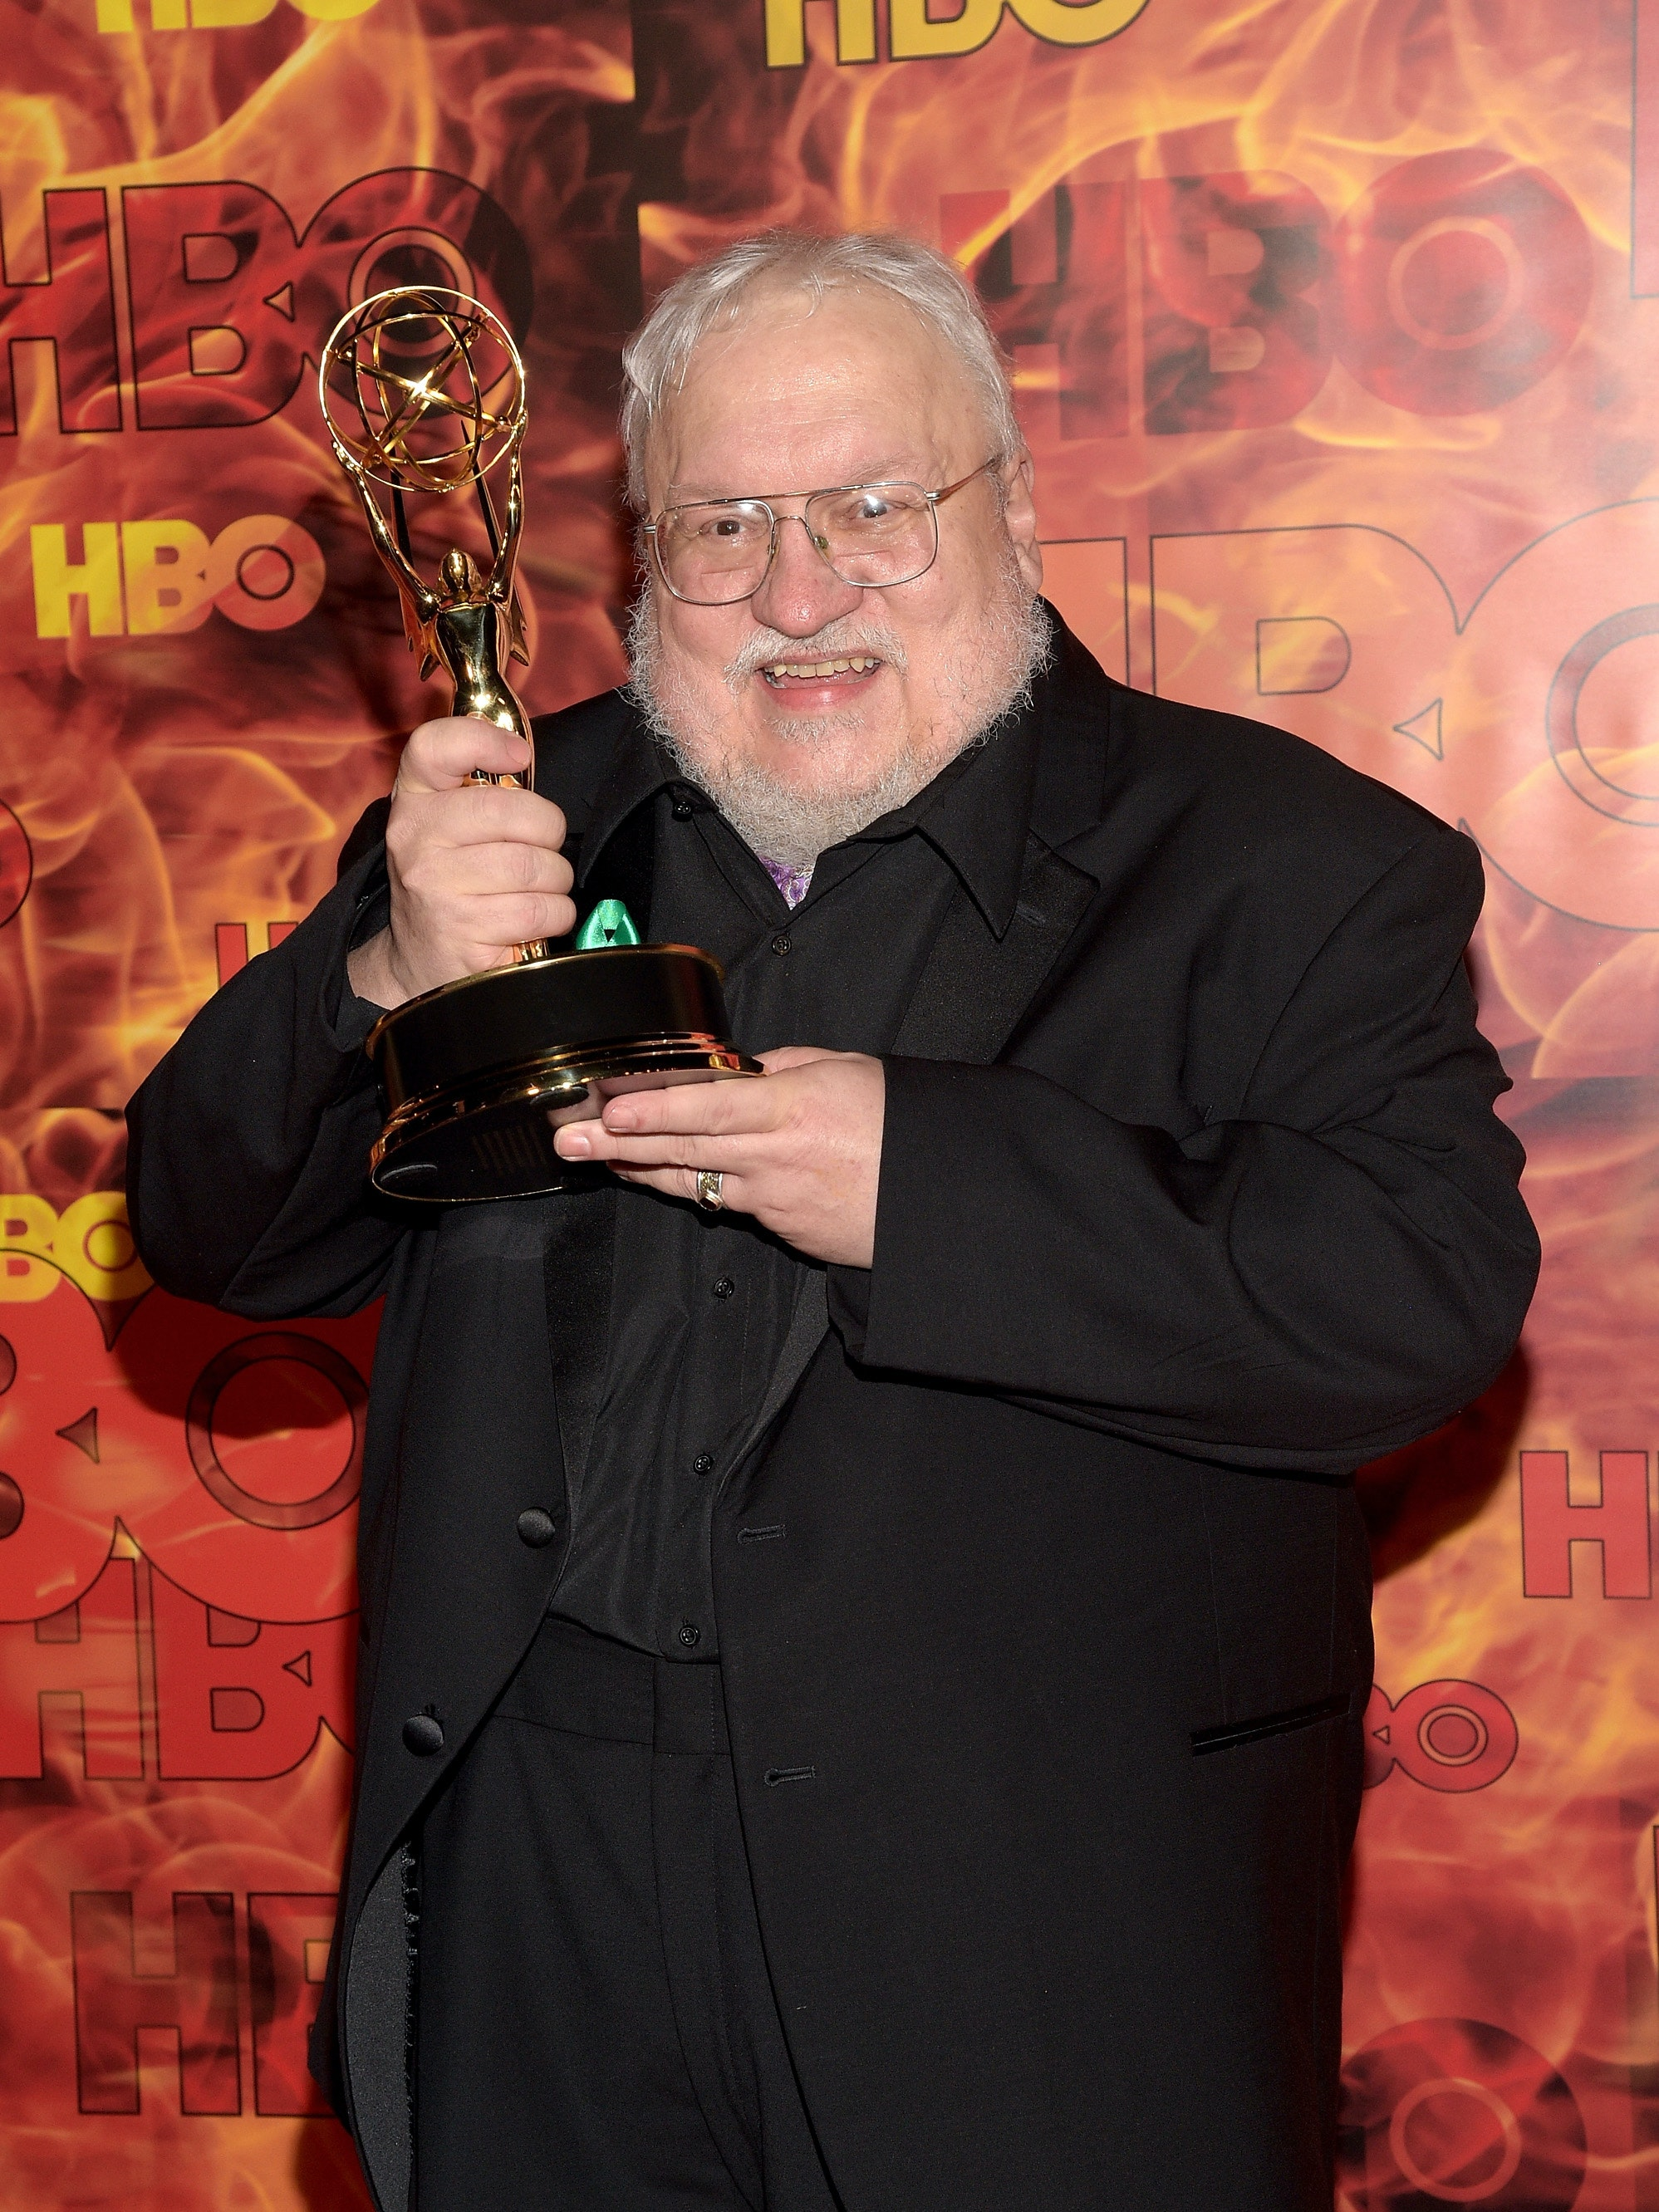 George R.R. Martin with Game of Thrones' Emmy